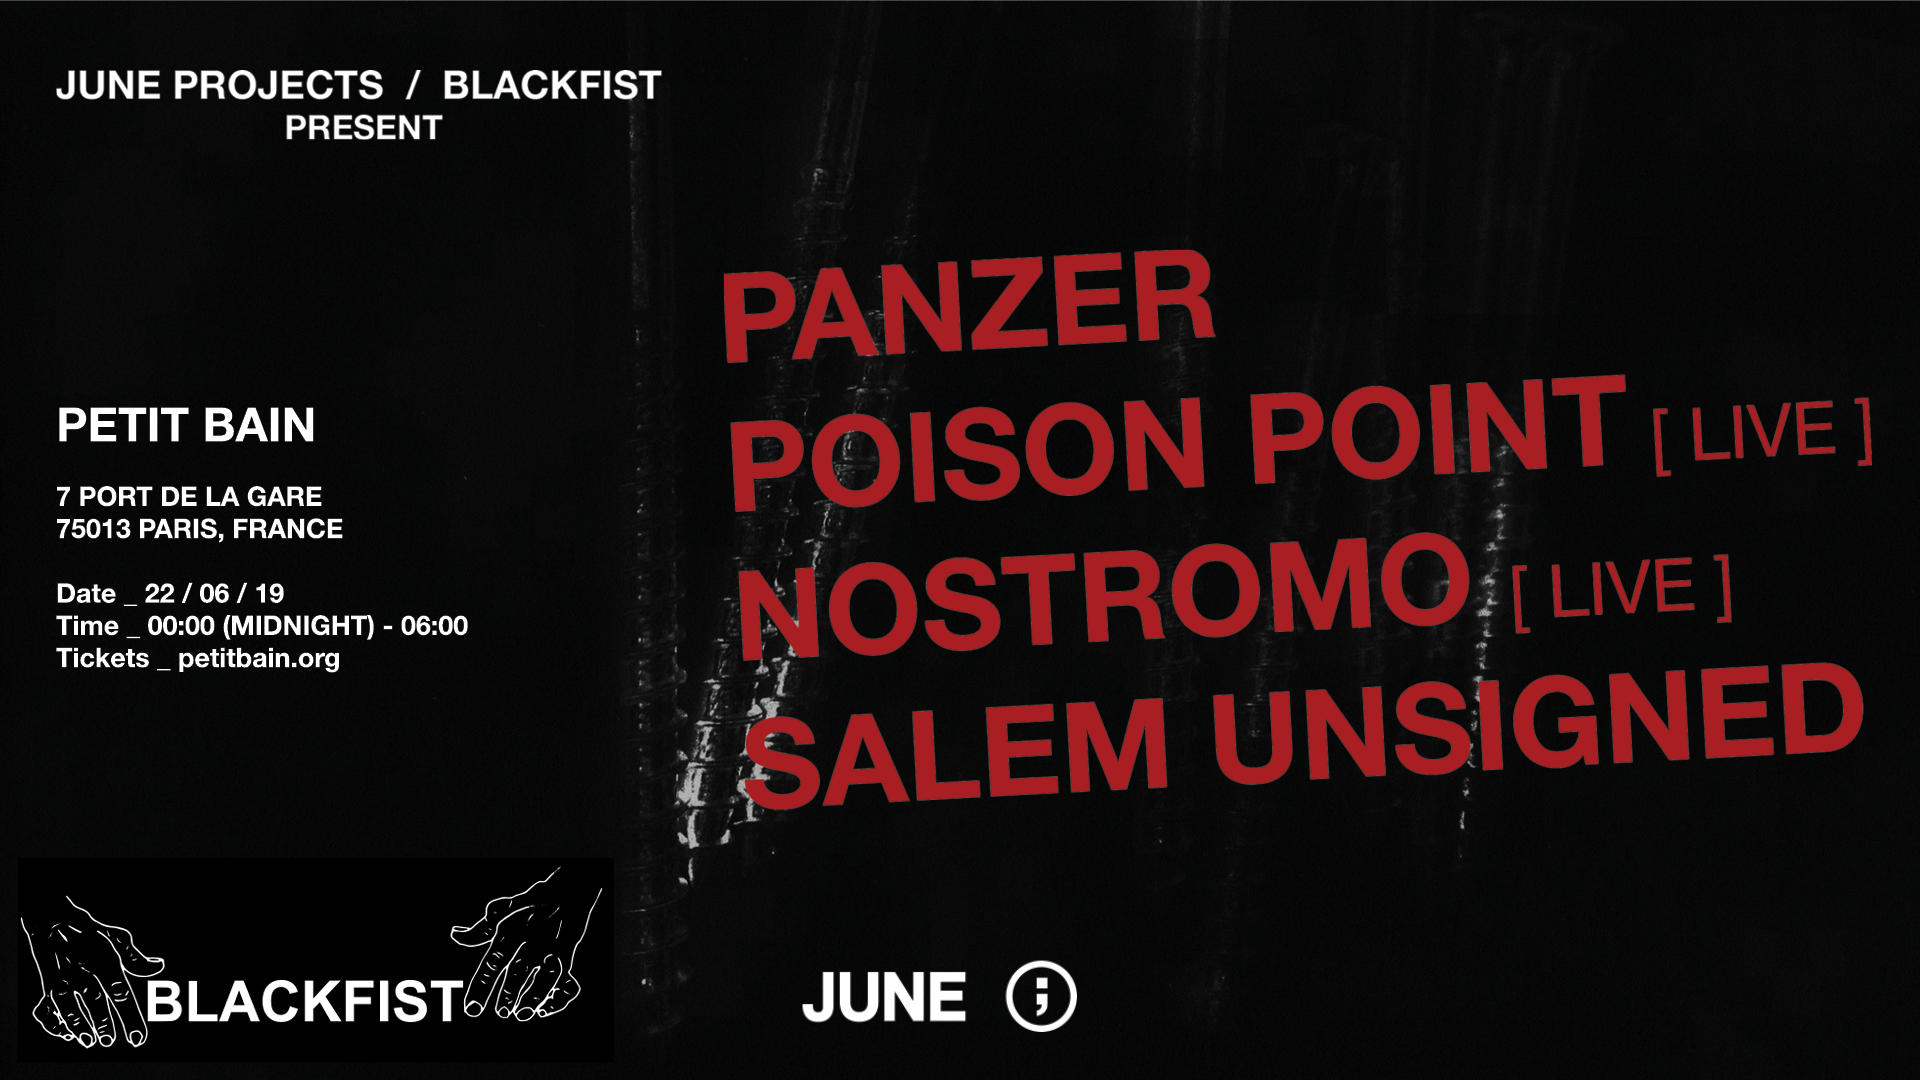 POISON POINT x NOSTROMO x SALEM UNSIGNED x PANZER